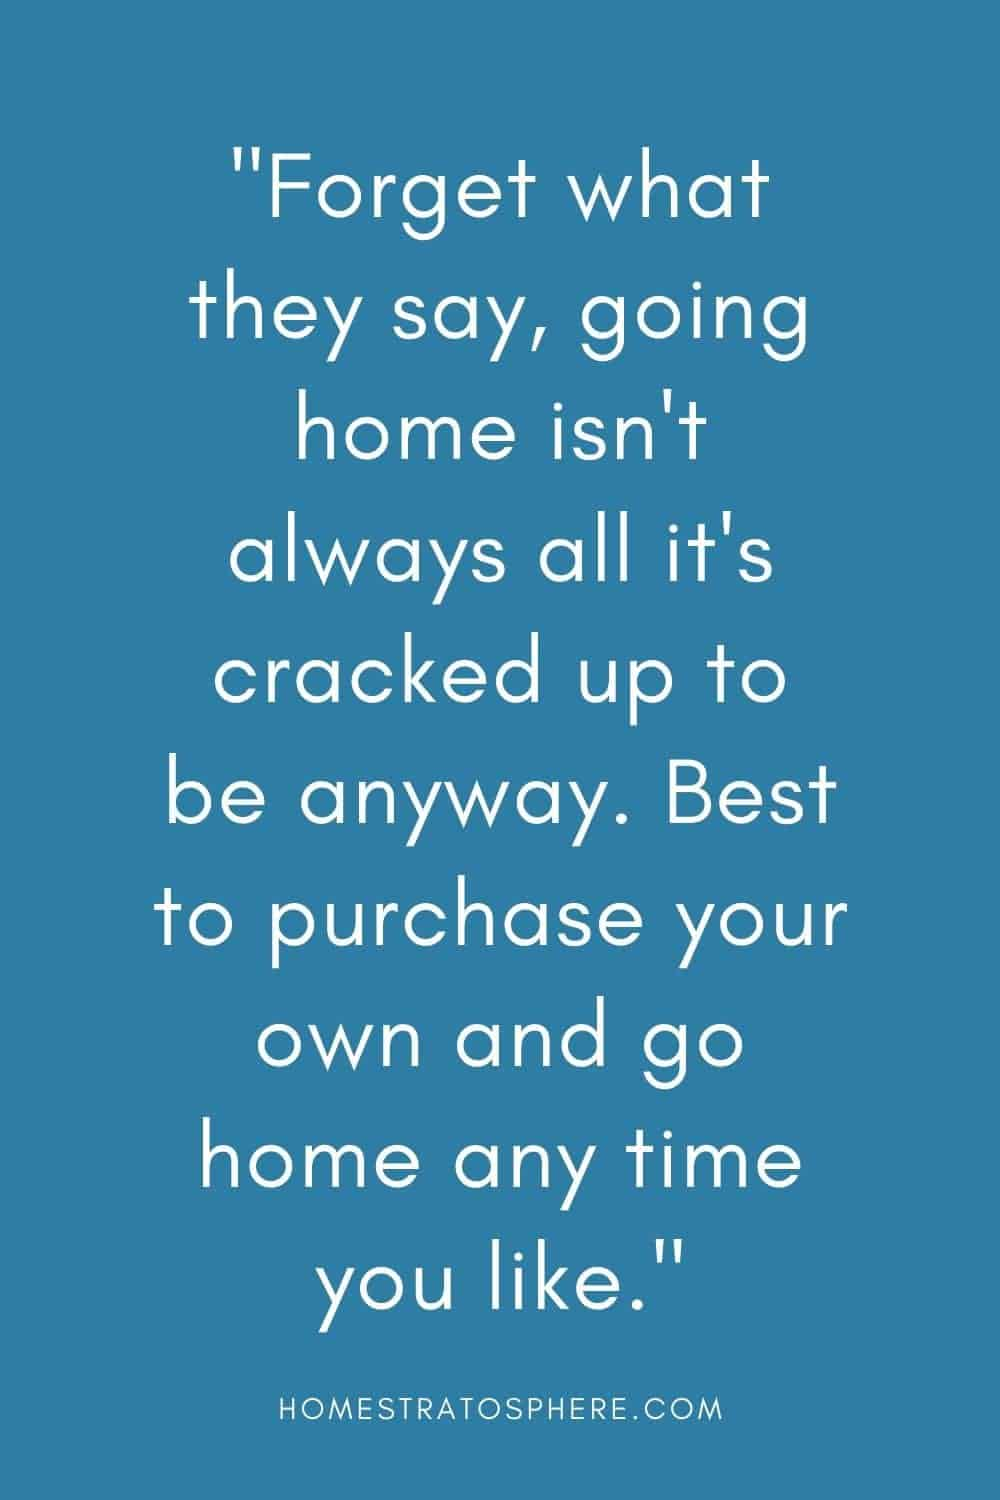 """Forget what they say, going home isn't always all it's cracked up to be anyway. Best to purchase your own and go home any time you like."""